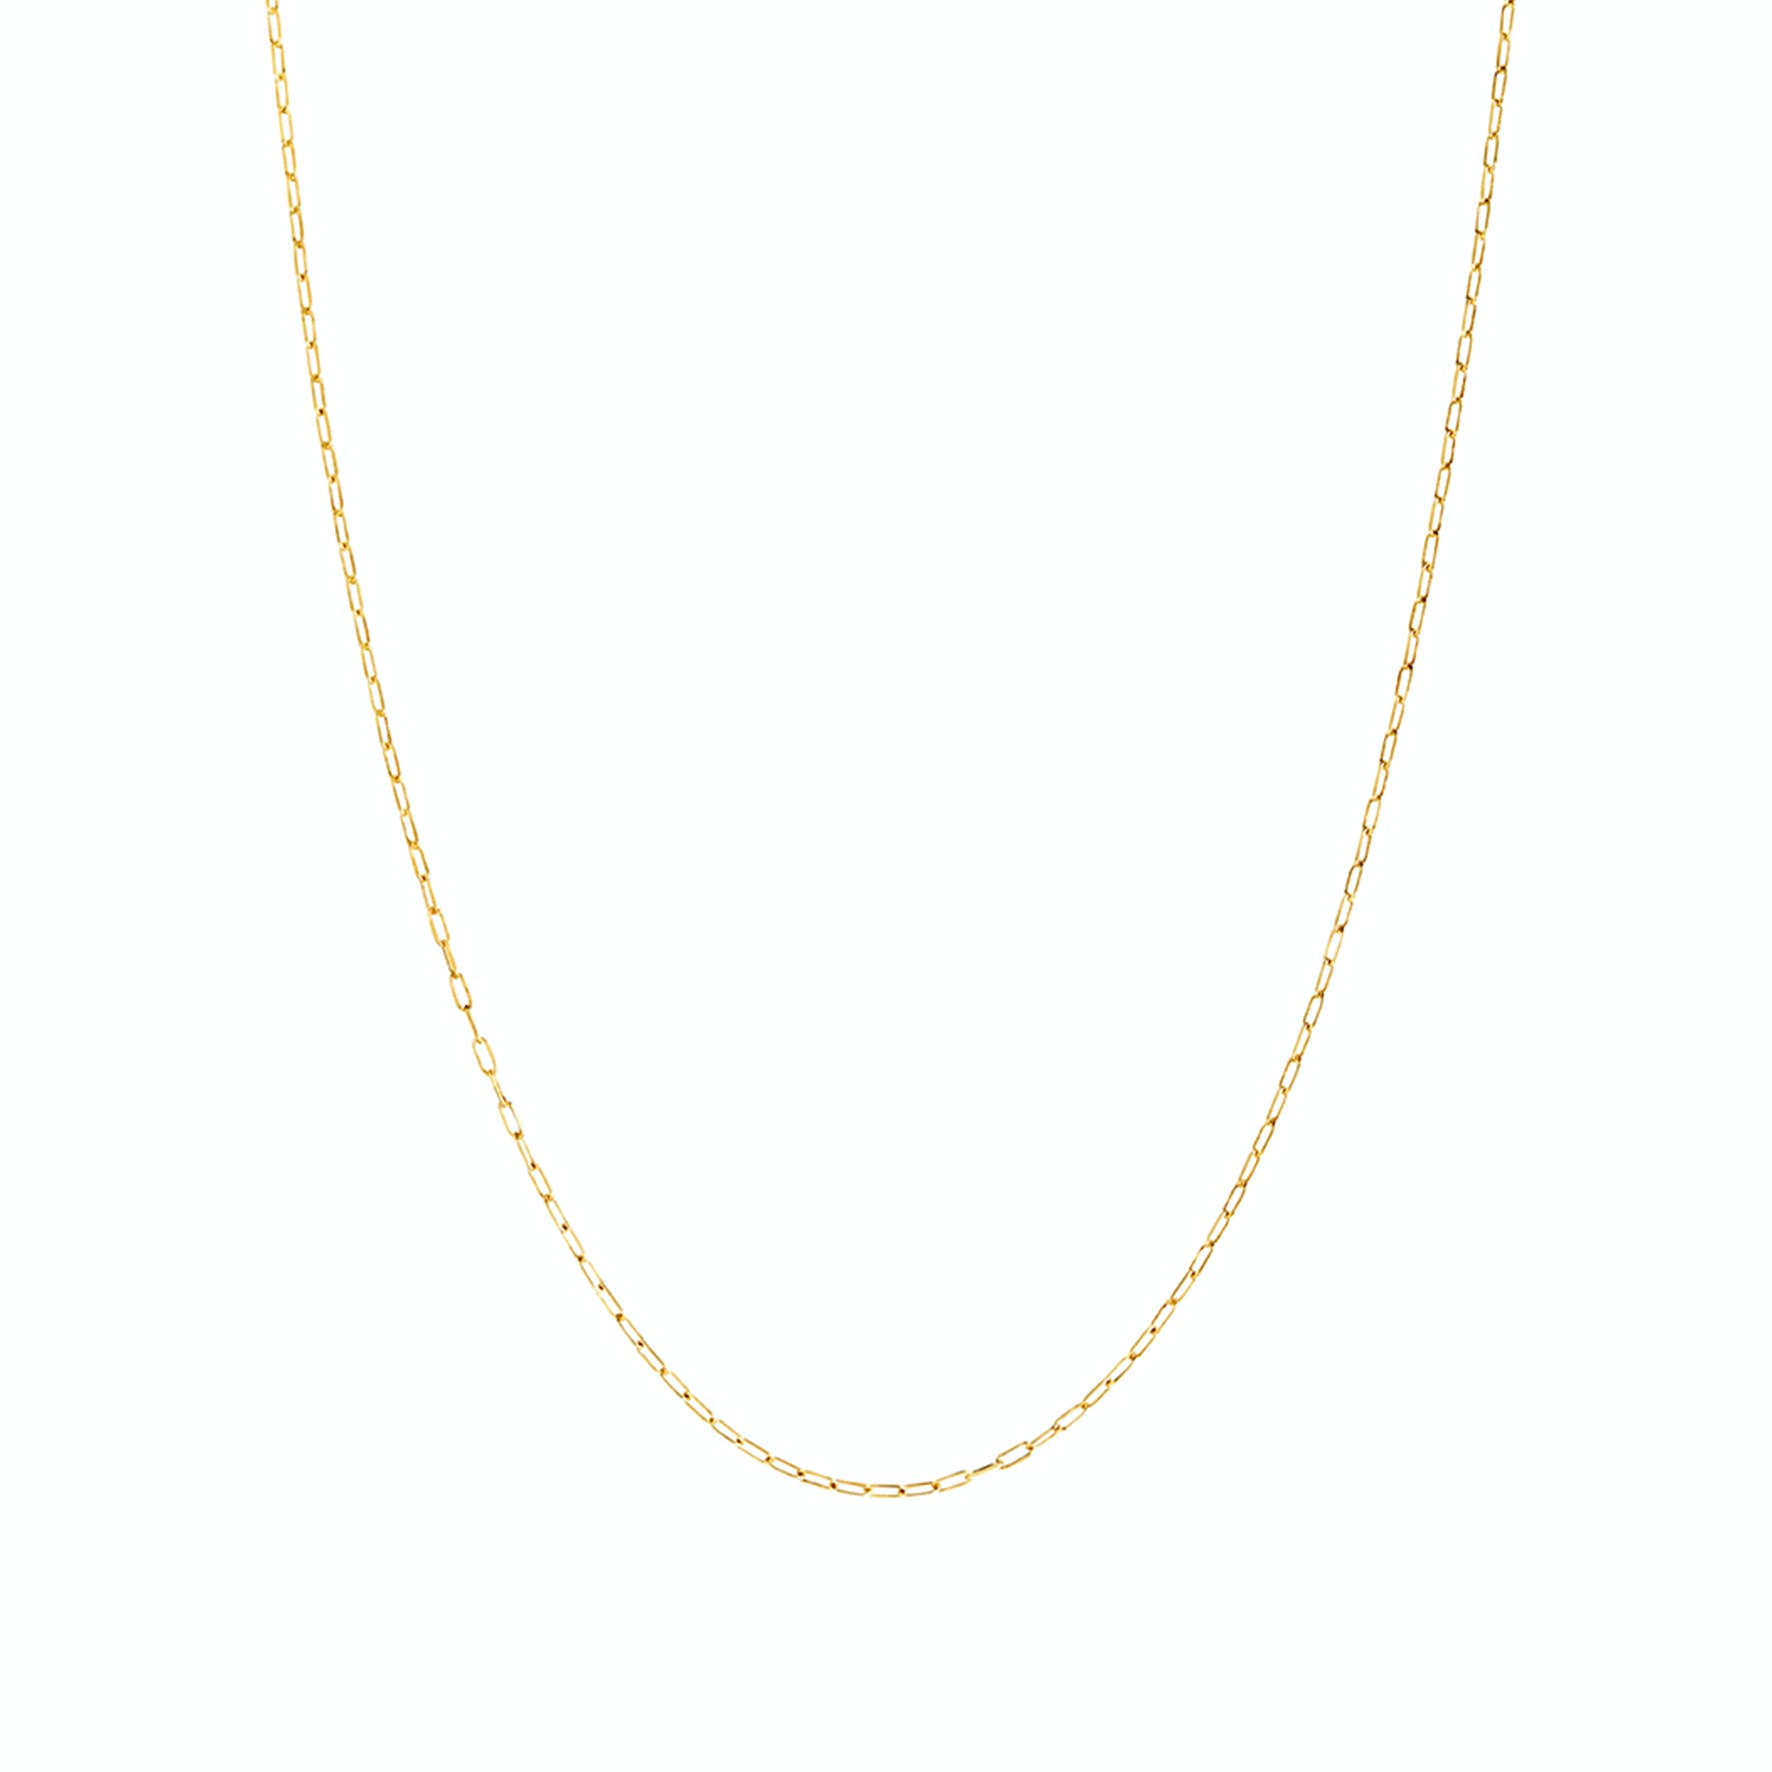 Garland Necklace Classic